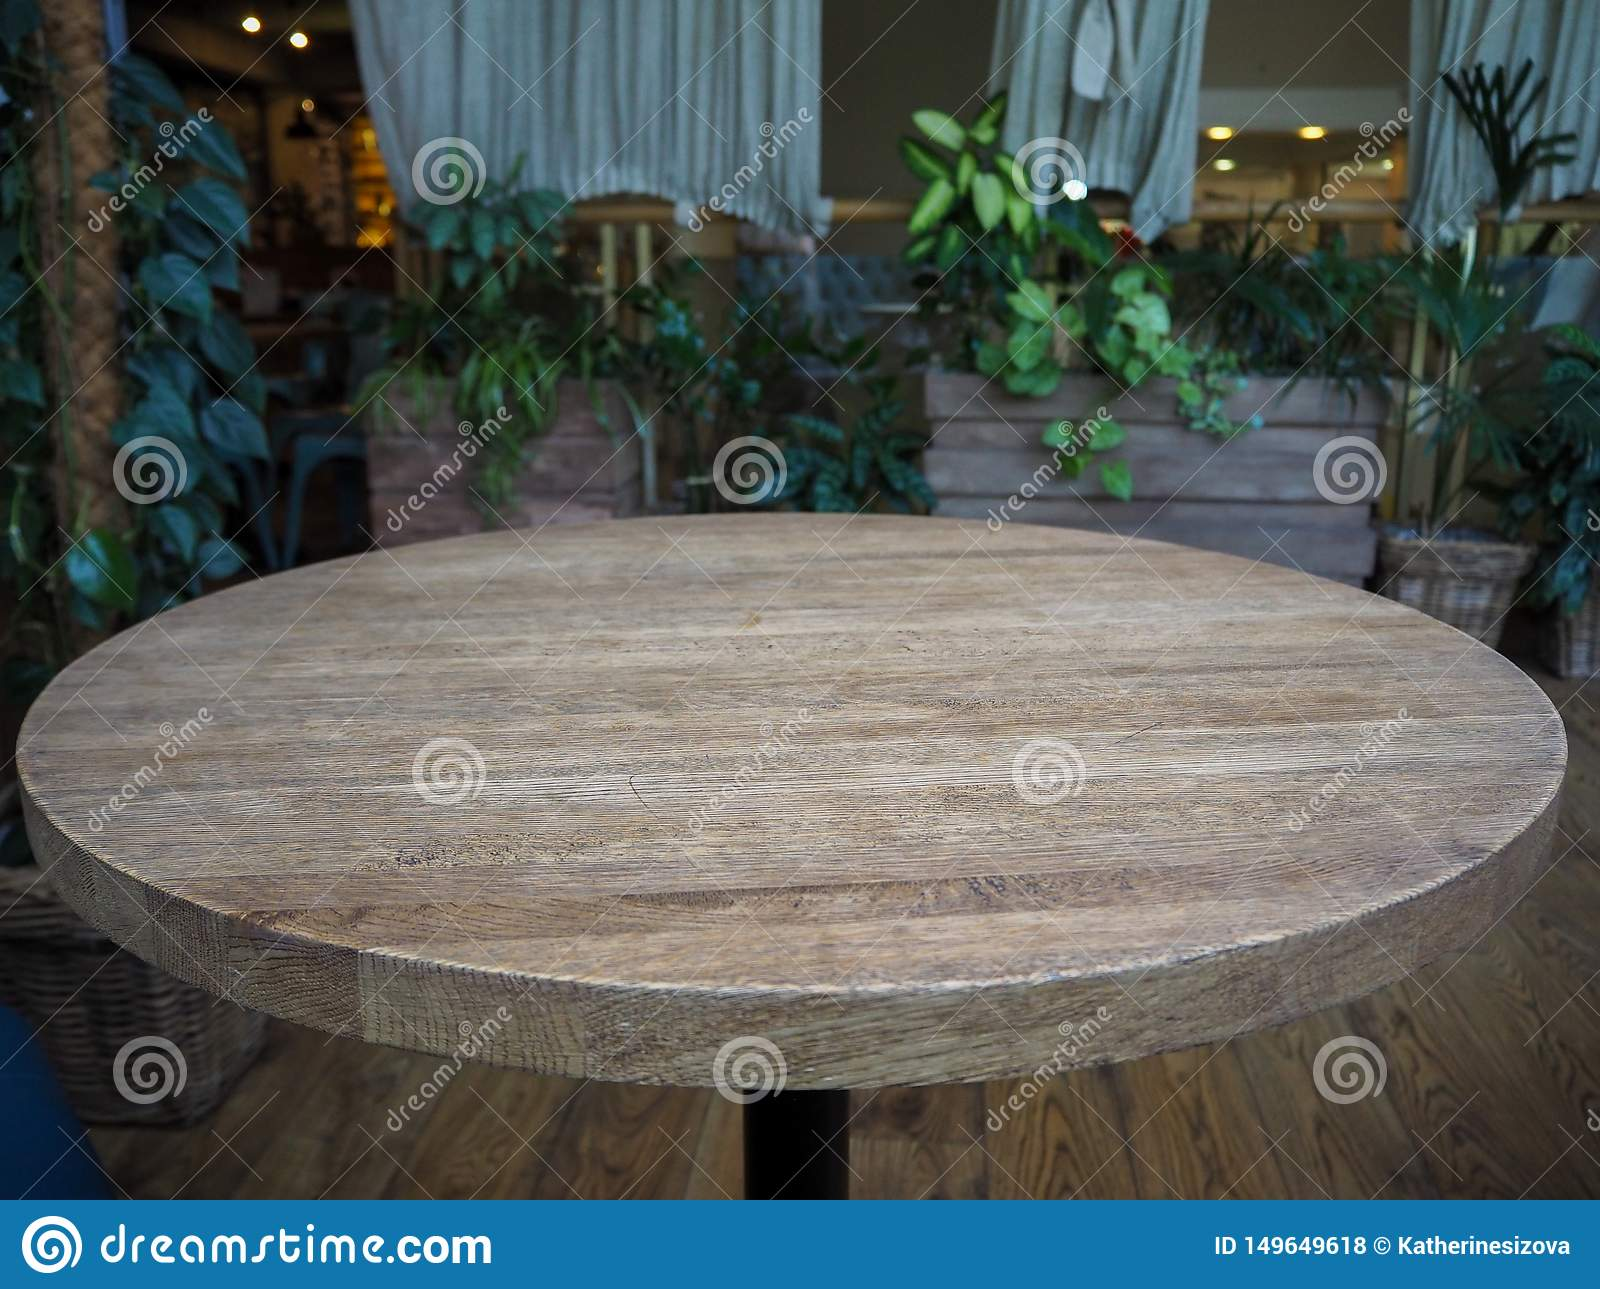 Empty round wooden table in a restaurant on the background of green plants